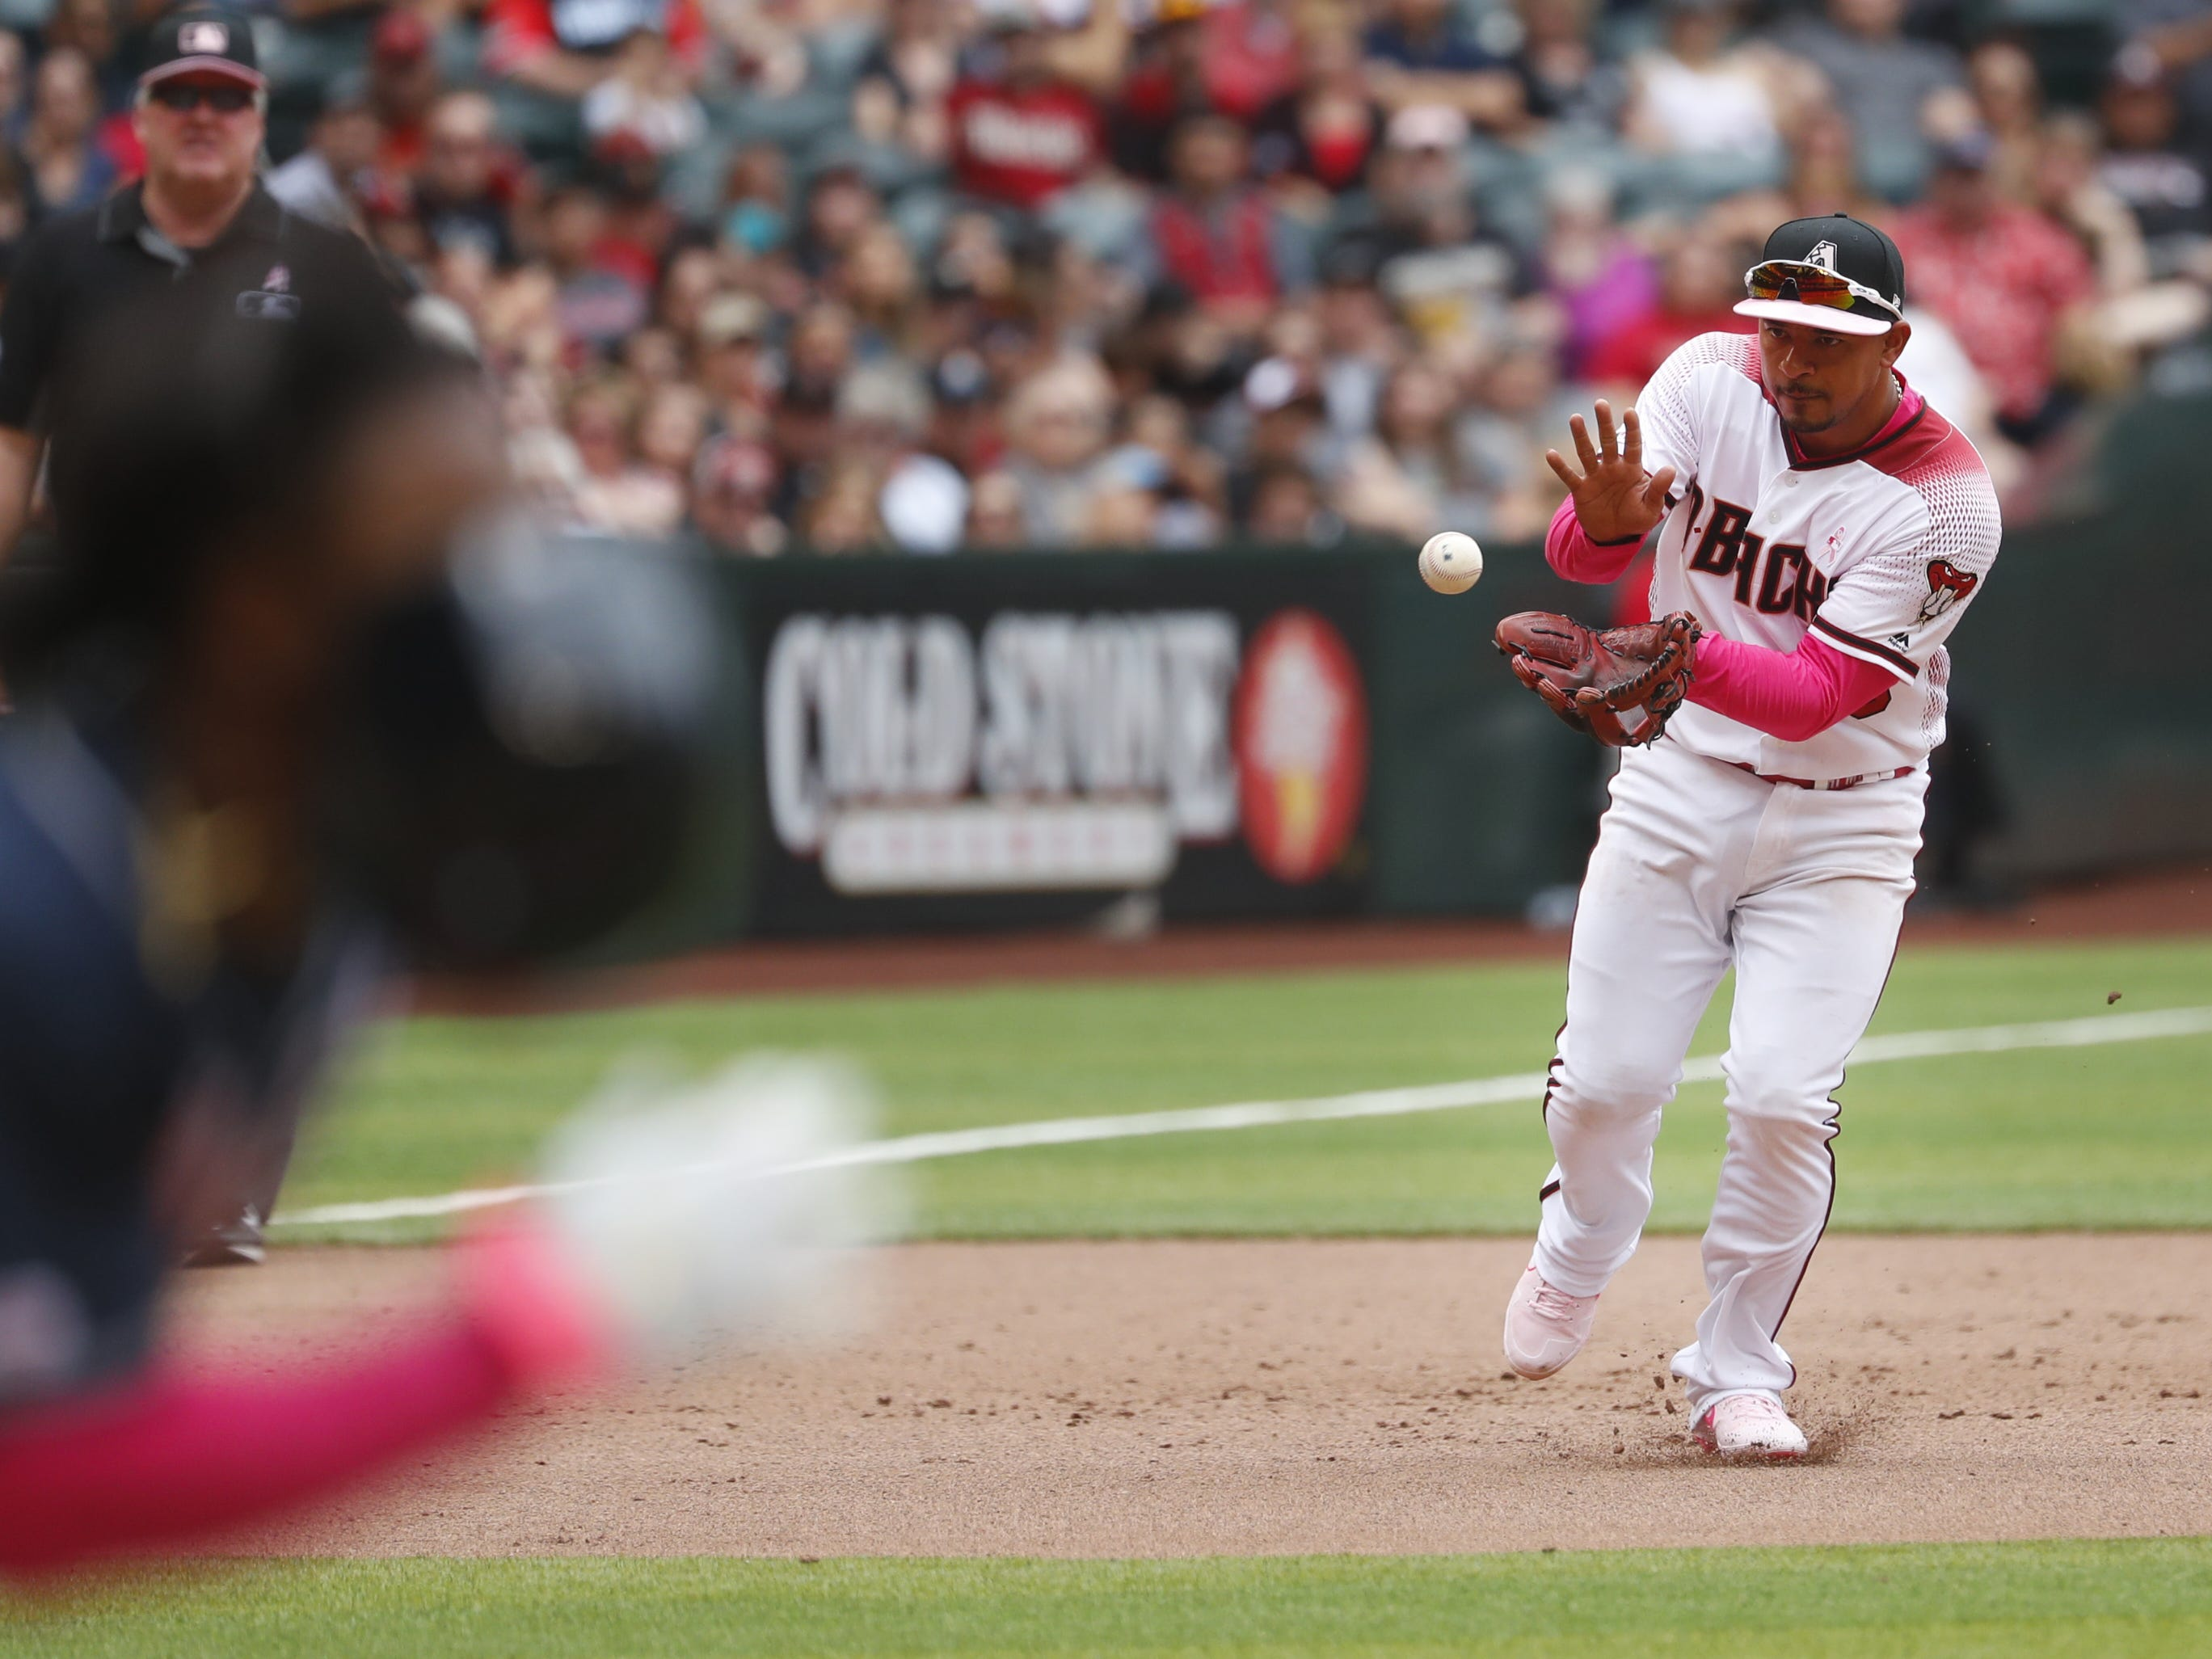 Diamondbacks' Eduardo Escobar fields a ground ball against the Braves during the seventh inning at Chase Field in Phoenix, Ariz. on May 12, 2019.